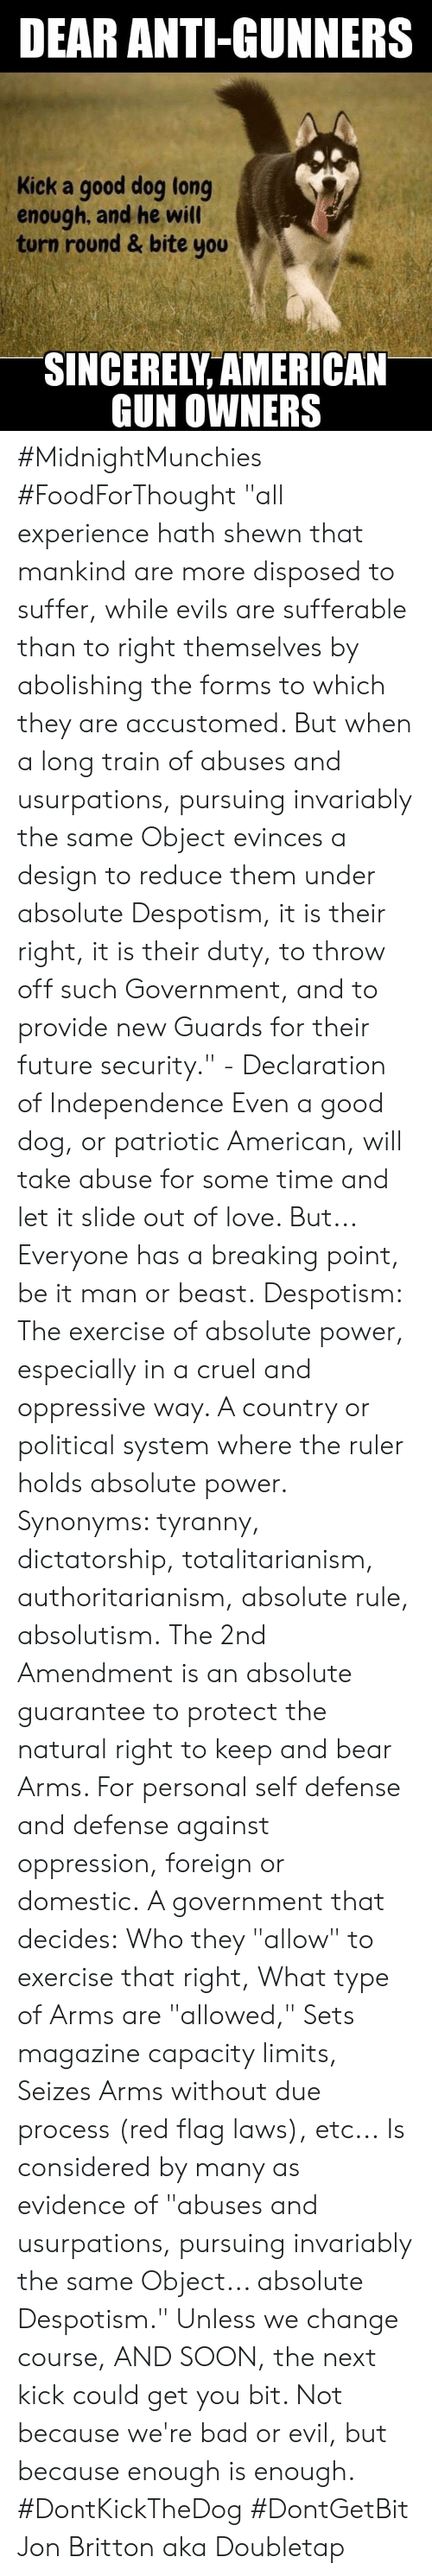 """despotism: DEAR ANTI-GUNNERS  Kick a good dog long  enough, and he will  turn round & bite you  SINCERELY AMERICAN  GUN OWNERS #MidnightMunchies #FoodForThought """"all experience hath shewn that mankind are more disposed to suffer, while evils are sufferable than to right themselves by abolishing the forms to which they are accustomed. But when a long train of abuses and usurpations, pursuing invariably the same Object evinces a design to reduce them under absolute Despotism, it is their right, it is their duty, to throw off such Government, and to provide new Guards for their future security."""" - Declaration of Independence   Even a good dog, or patriotic American, will take abuse for some time and let it slide out of love. But... Everyone has a breaking point, be it man or beast.  Despotism: The exercise of absolute power, especially in a cruel and oppressive way. A country or political system where the ruler holds absolute power. Synonyms: tyranny, dictatorship, totalitarianism, authoritarianism, absolute rule, absolutism.  The 2nd Amendment is an absolute guarantee to protect the natural right to keep and bear Arms. For personal self defense and defense against oppression, foreign or domestic.  A government that decides: Who they """"allow"""" to exercise that right, What type of Arms are """"allowed,"""" Sets magazine capacity limits, Seizes Arms without due process (red flag laws), etc...  Is considered by many as evidence of """"abuses and usurpations, pursuing invariably the same Object... absolute Despotism.""""  Unless we change course, AND SOON, the next kick could get you bit. Not because we're bad or evil, but because enough is enough.  #DontKickTheDog #DontGetBit Jon Britton aka Doubletap"""